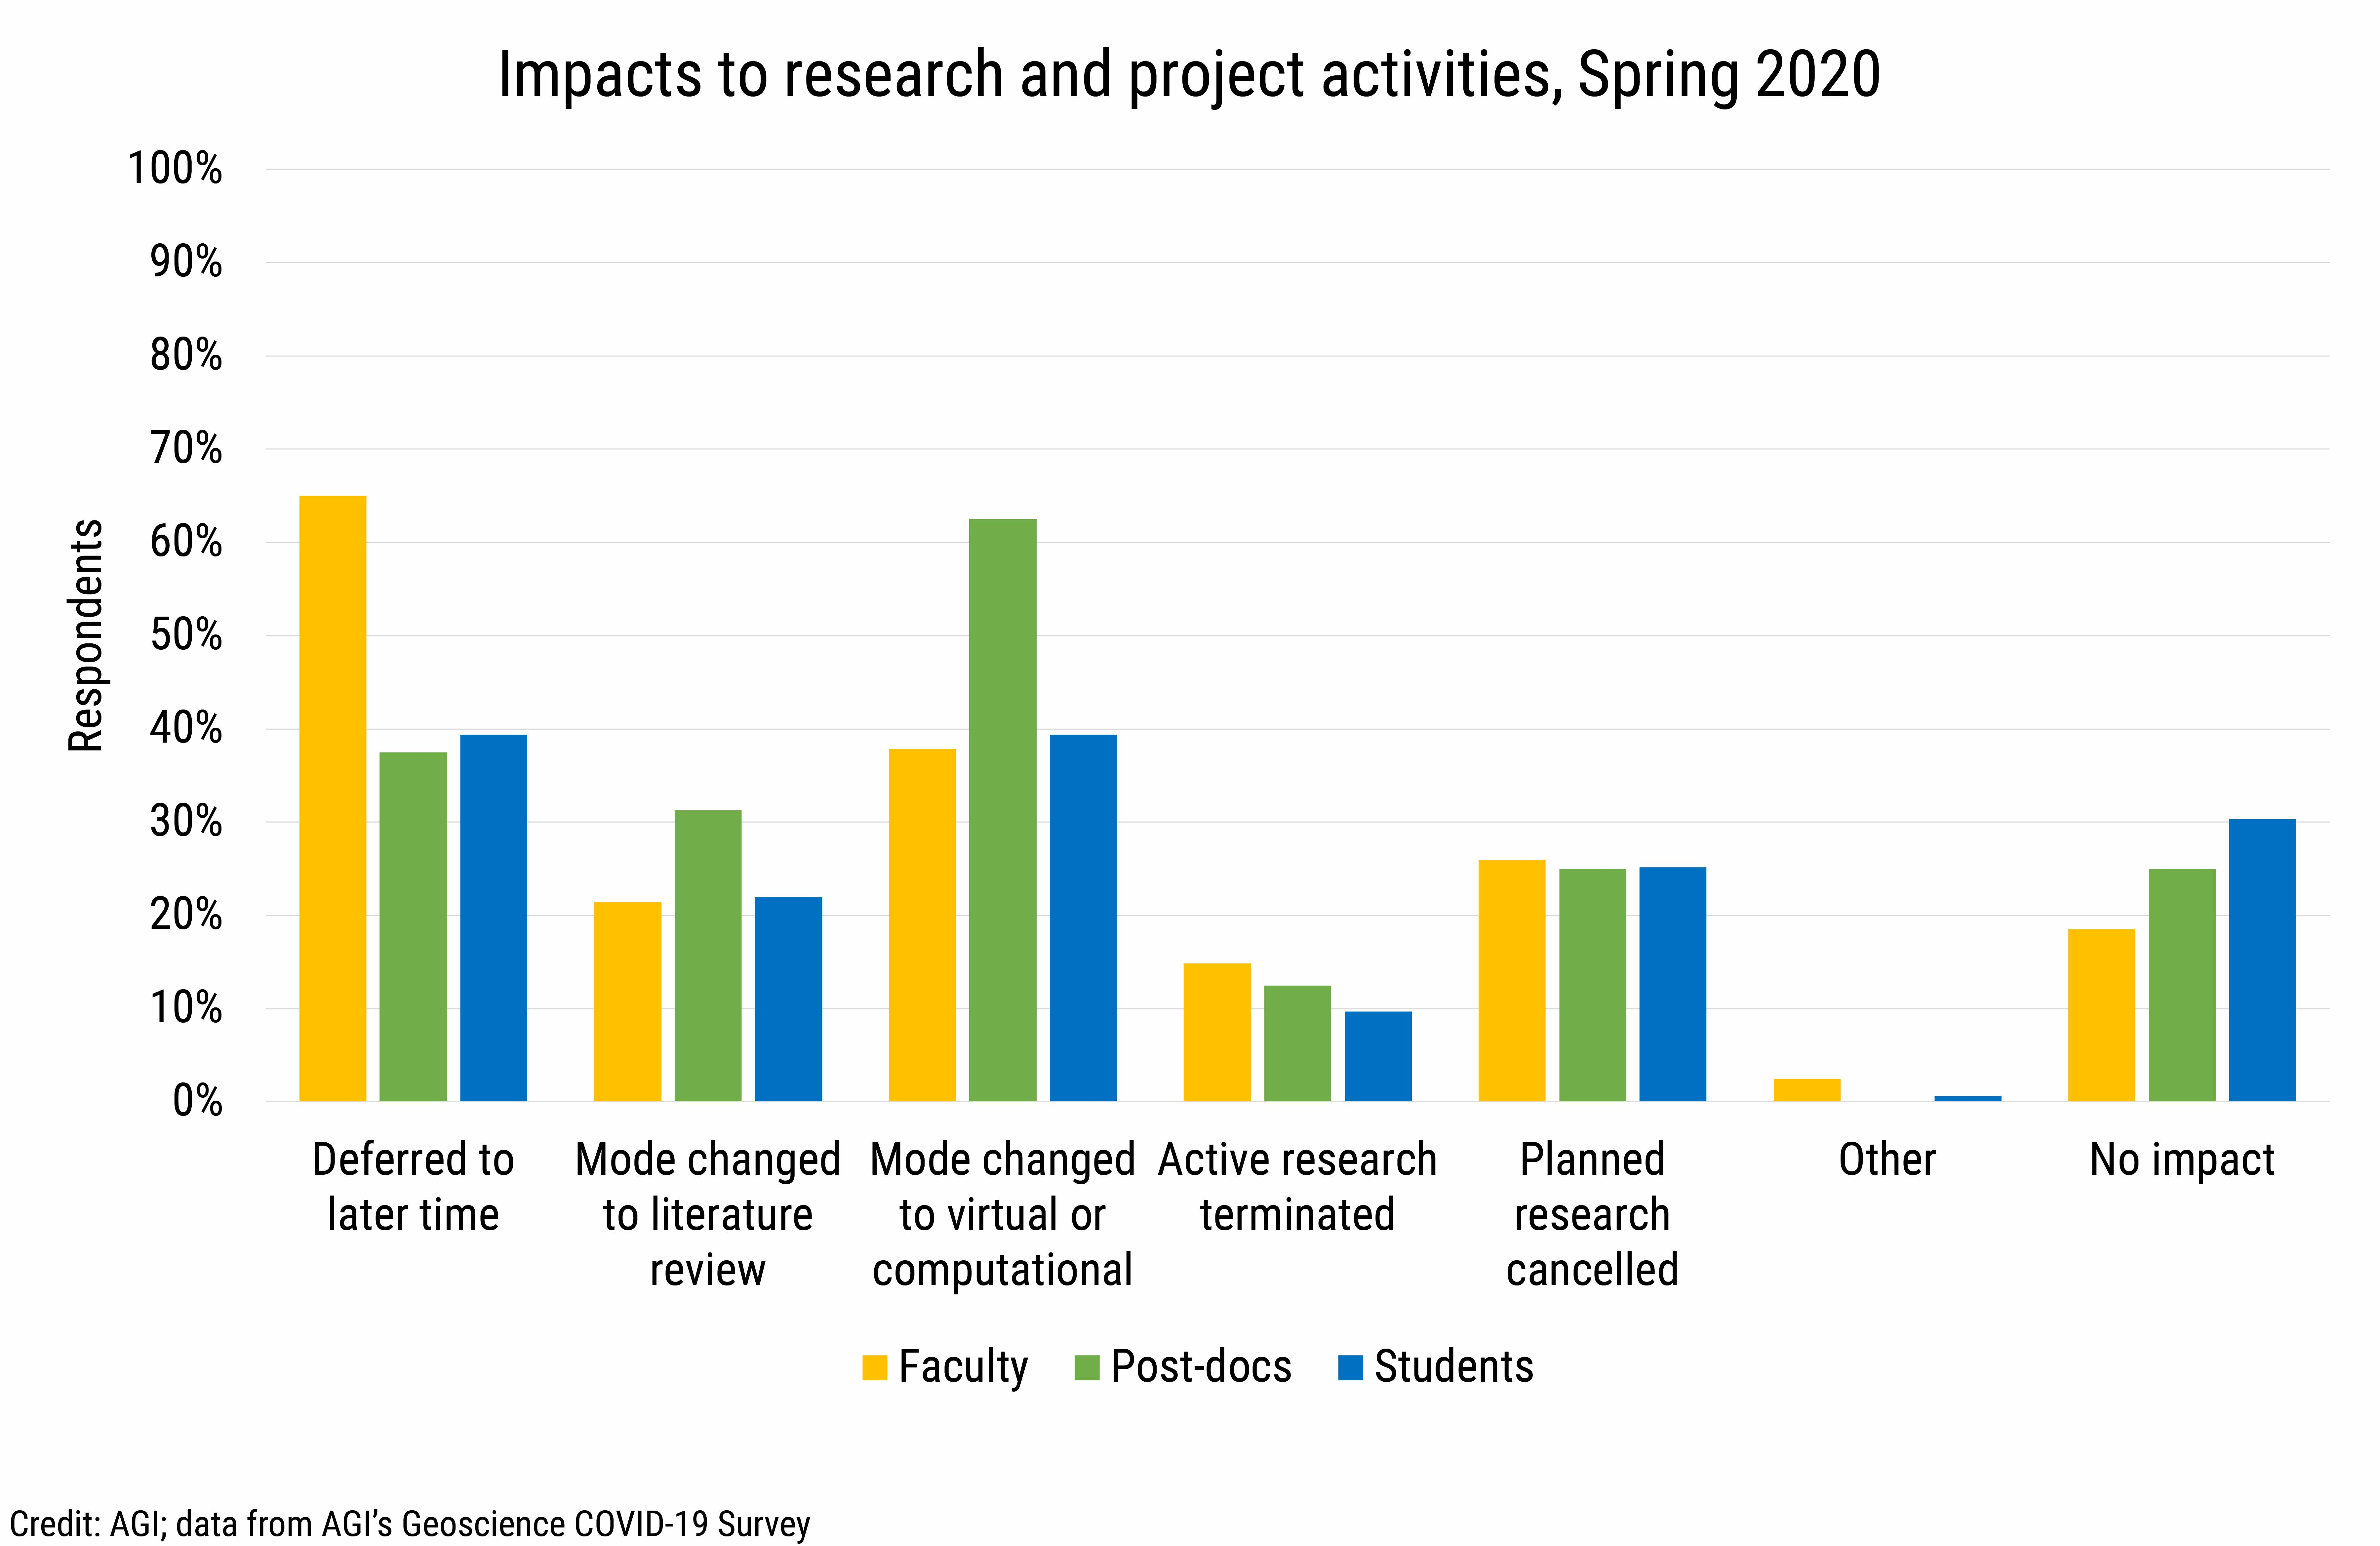 DB2020-021: chart 05:Impacts to projects and research activities, Spring 2020 (Credit: AGI; data from AGI's Geoscience COVID-19 Survey)